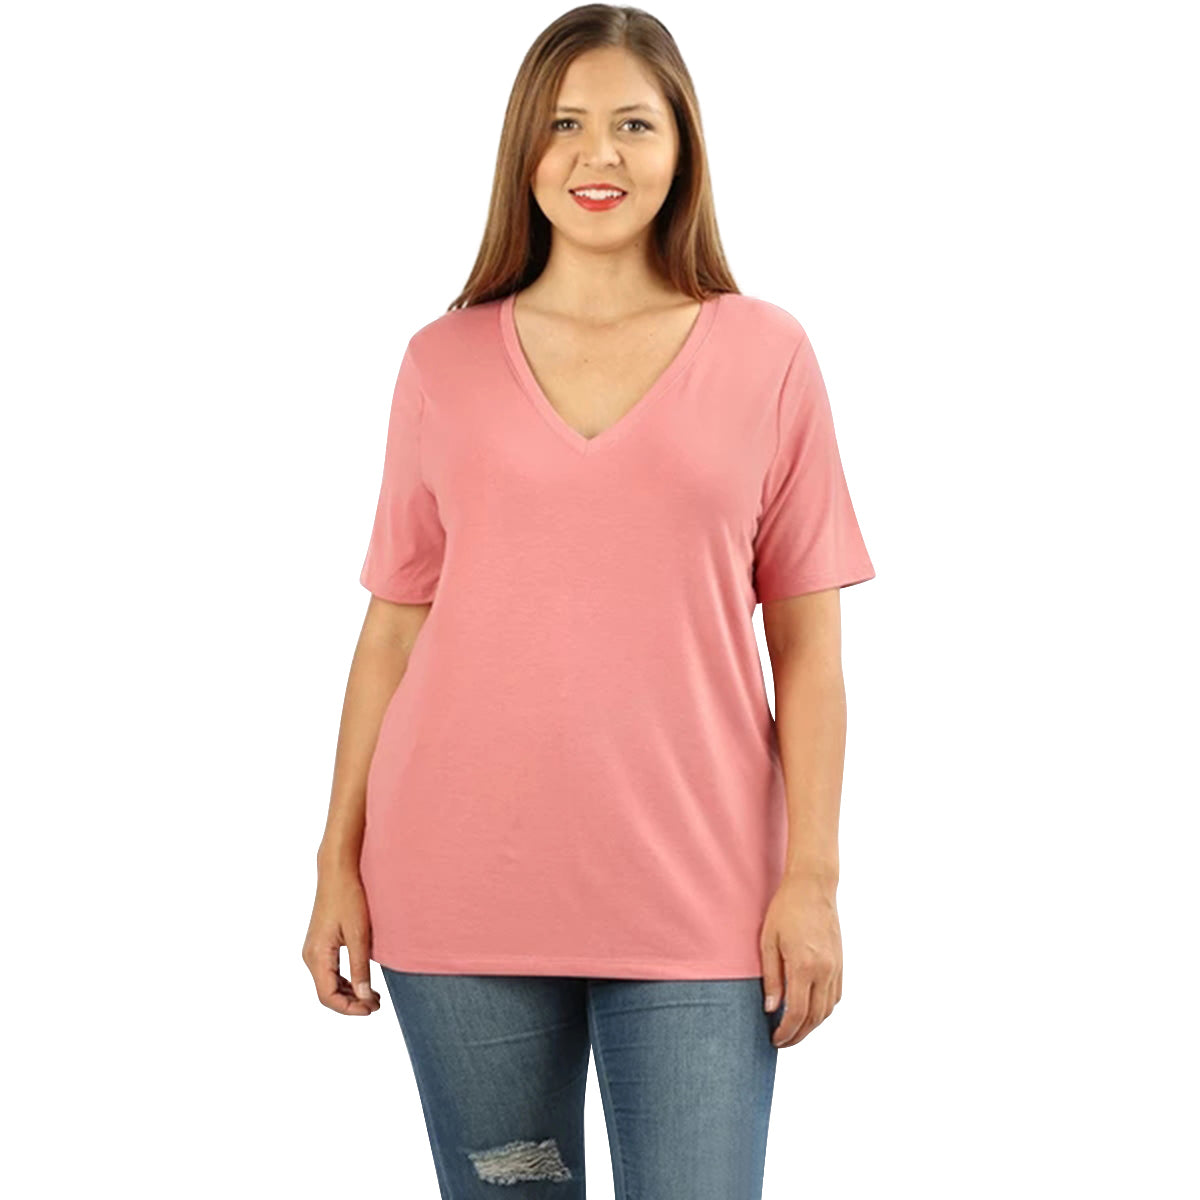 Lavra Women's Plus Size Soft Casual V-Neck Short Sleeve Tee